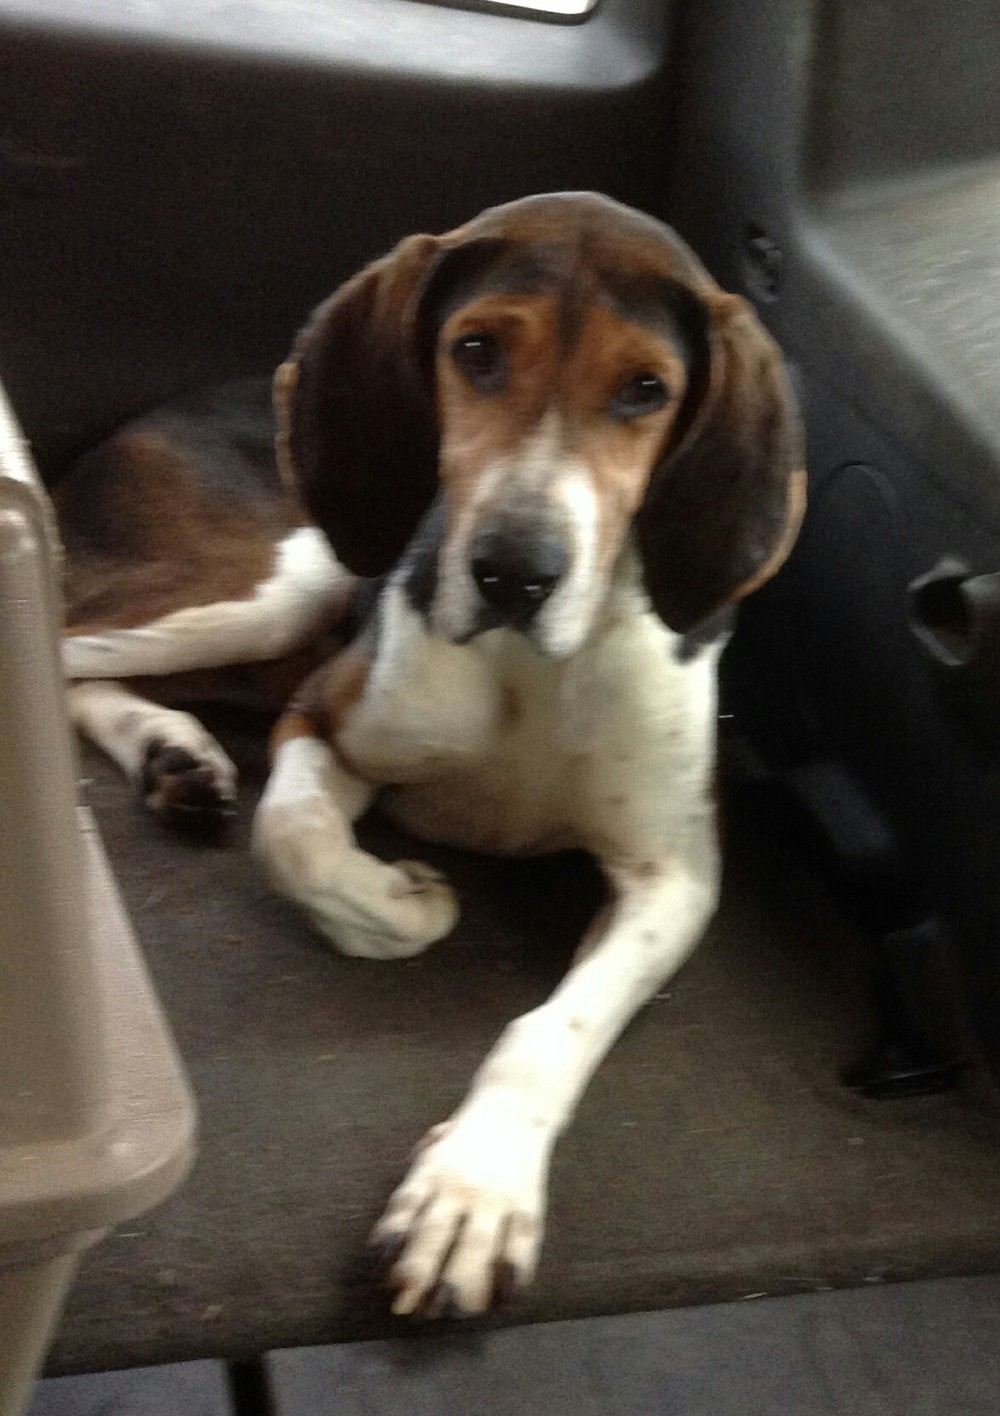 Hi everyone! I'm Elvis, a 4-year old American Foxhound. I'm easy going, have a loving temperament, and a real sweetheart. Look deep into my eyes - aren't they soulful? I'm taking classes with my pal Solar right now, but when I'm done, maybe you can make room in your house for this lovable hound dog?